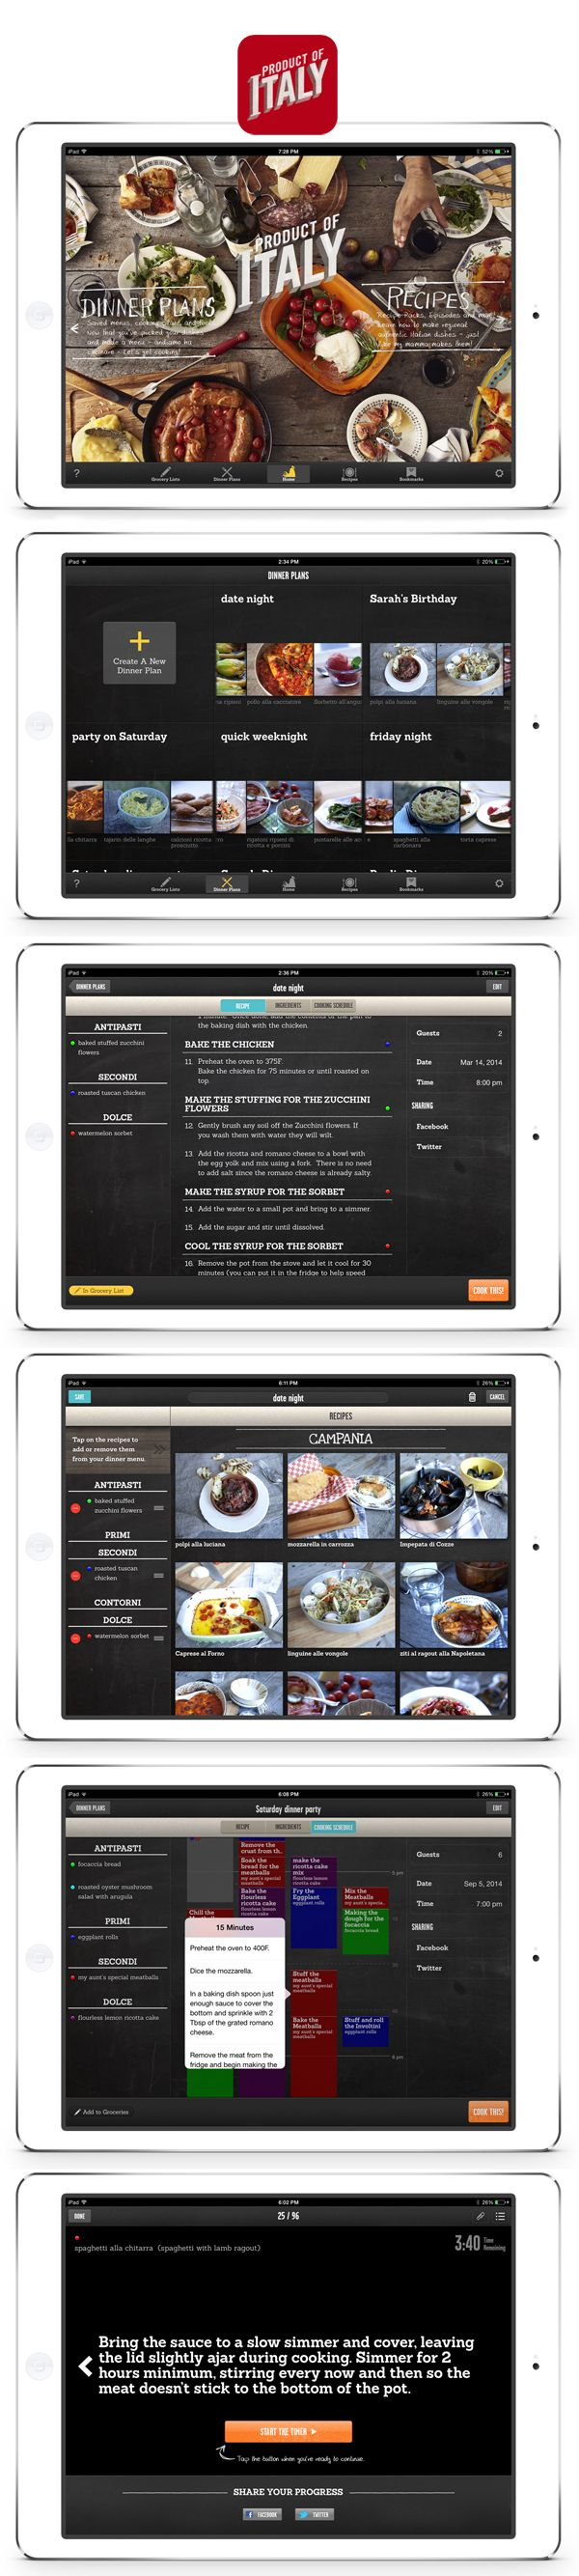 Dinner party recipes, interactive food series  and menu builder app on iTunes from Italian Supper Club chef Massimo Bruno. Combines your custom menus into one collapsed recipe.  www.productofitaly.ca